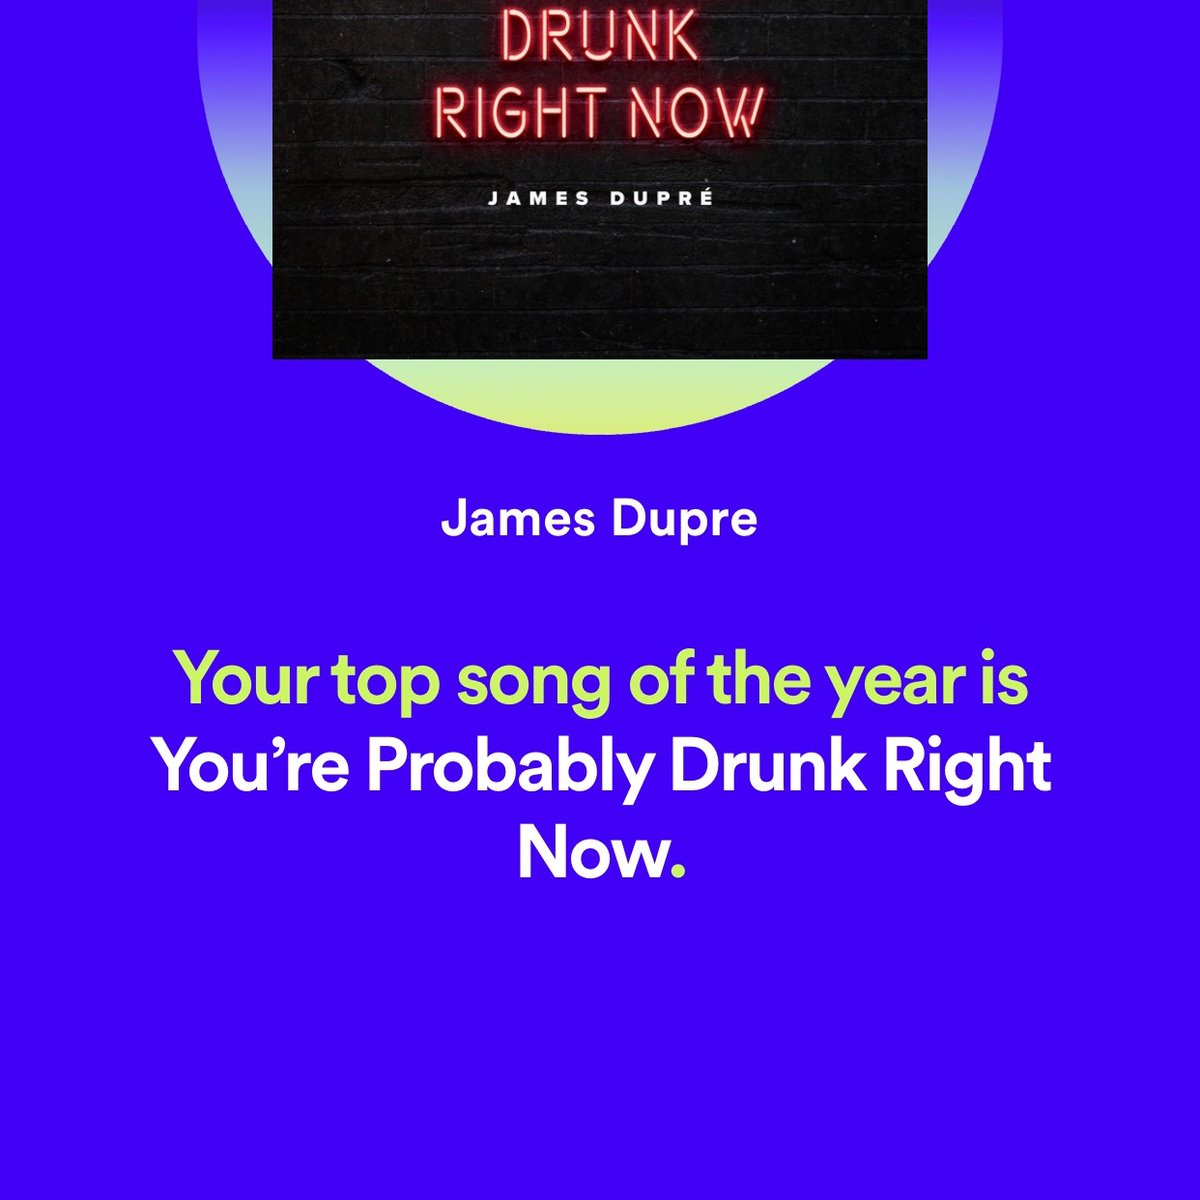 Not exactly sure what that says about my year...(proves I know a good song when I hear one though!)